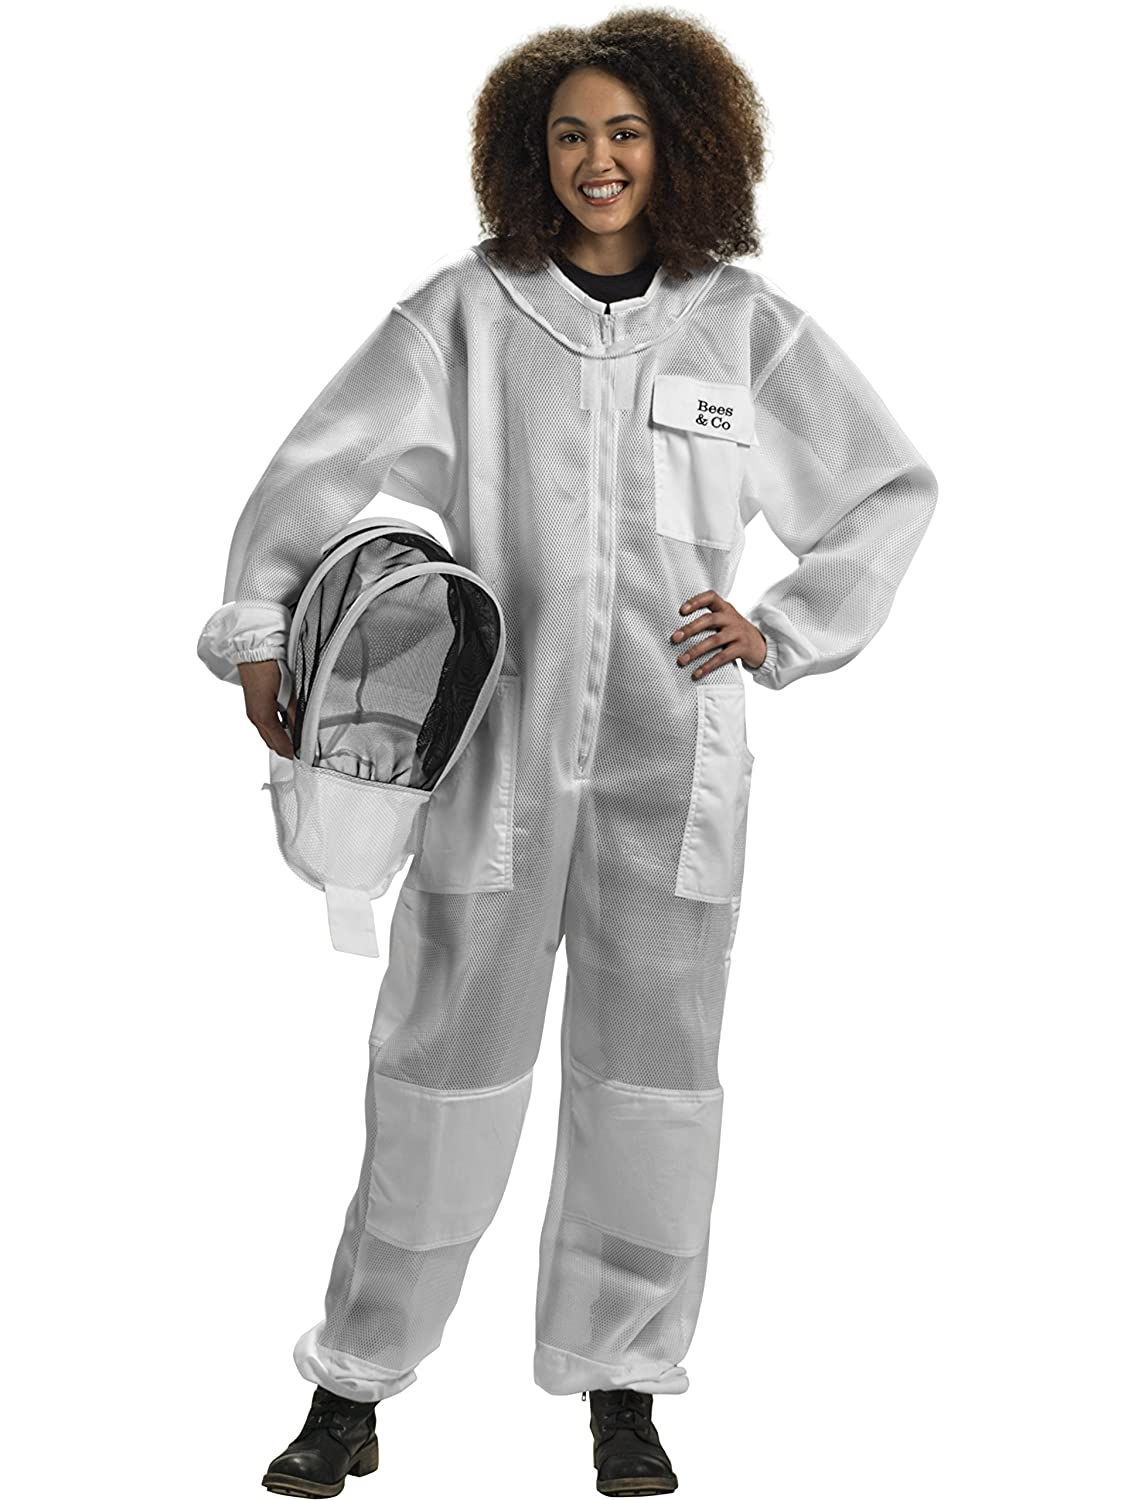 Bees & Co U84 Ultralight Beekeeper Suit with Fencing Veil Sigma Lux